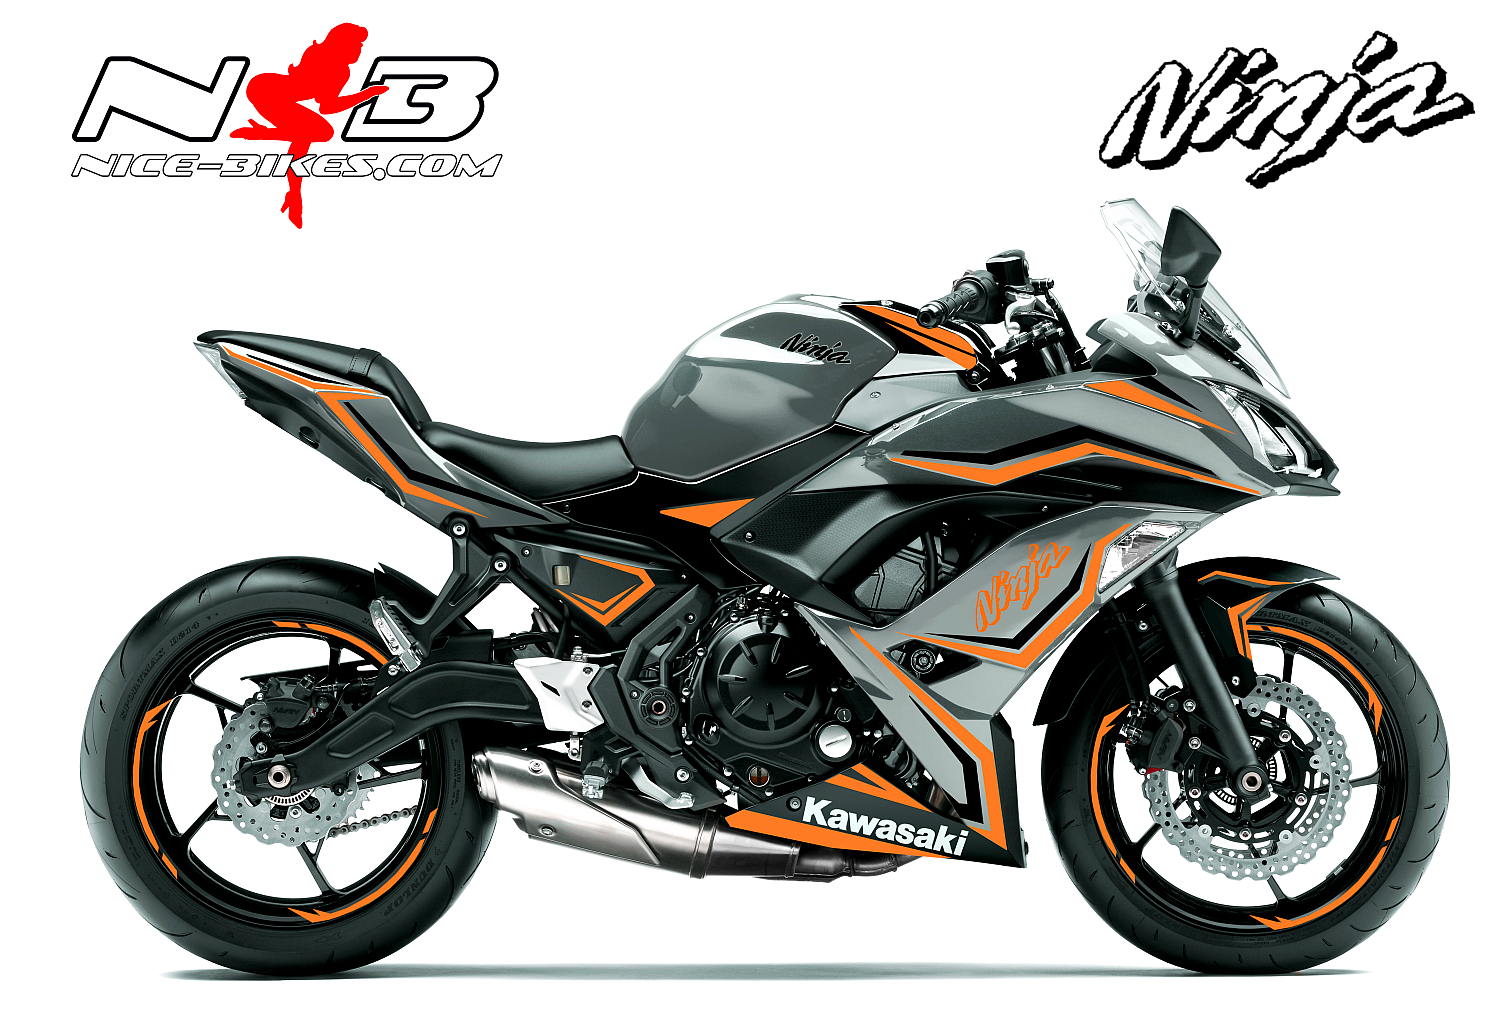 Ninja 650 Foliendekor orange/schwarz für Graue Maschine 2018-